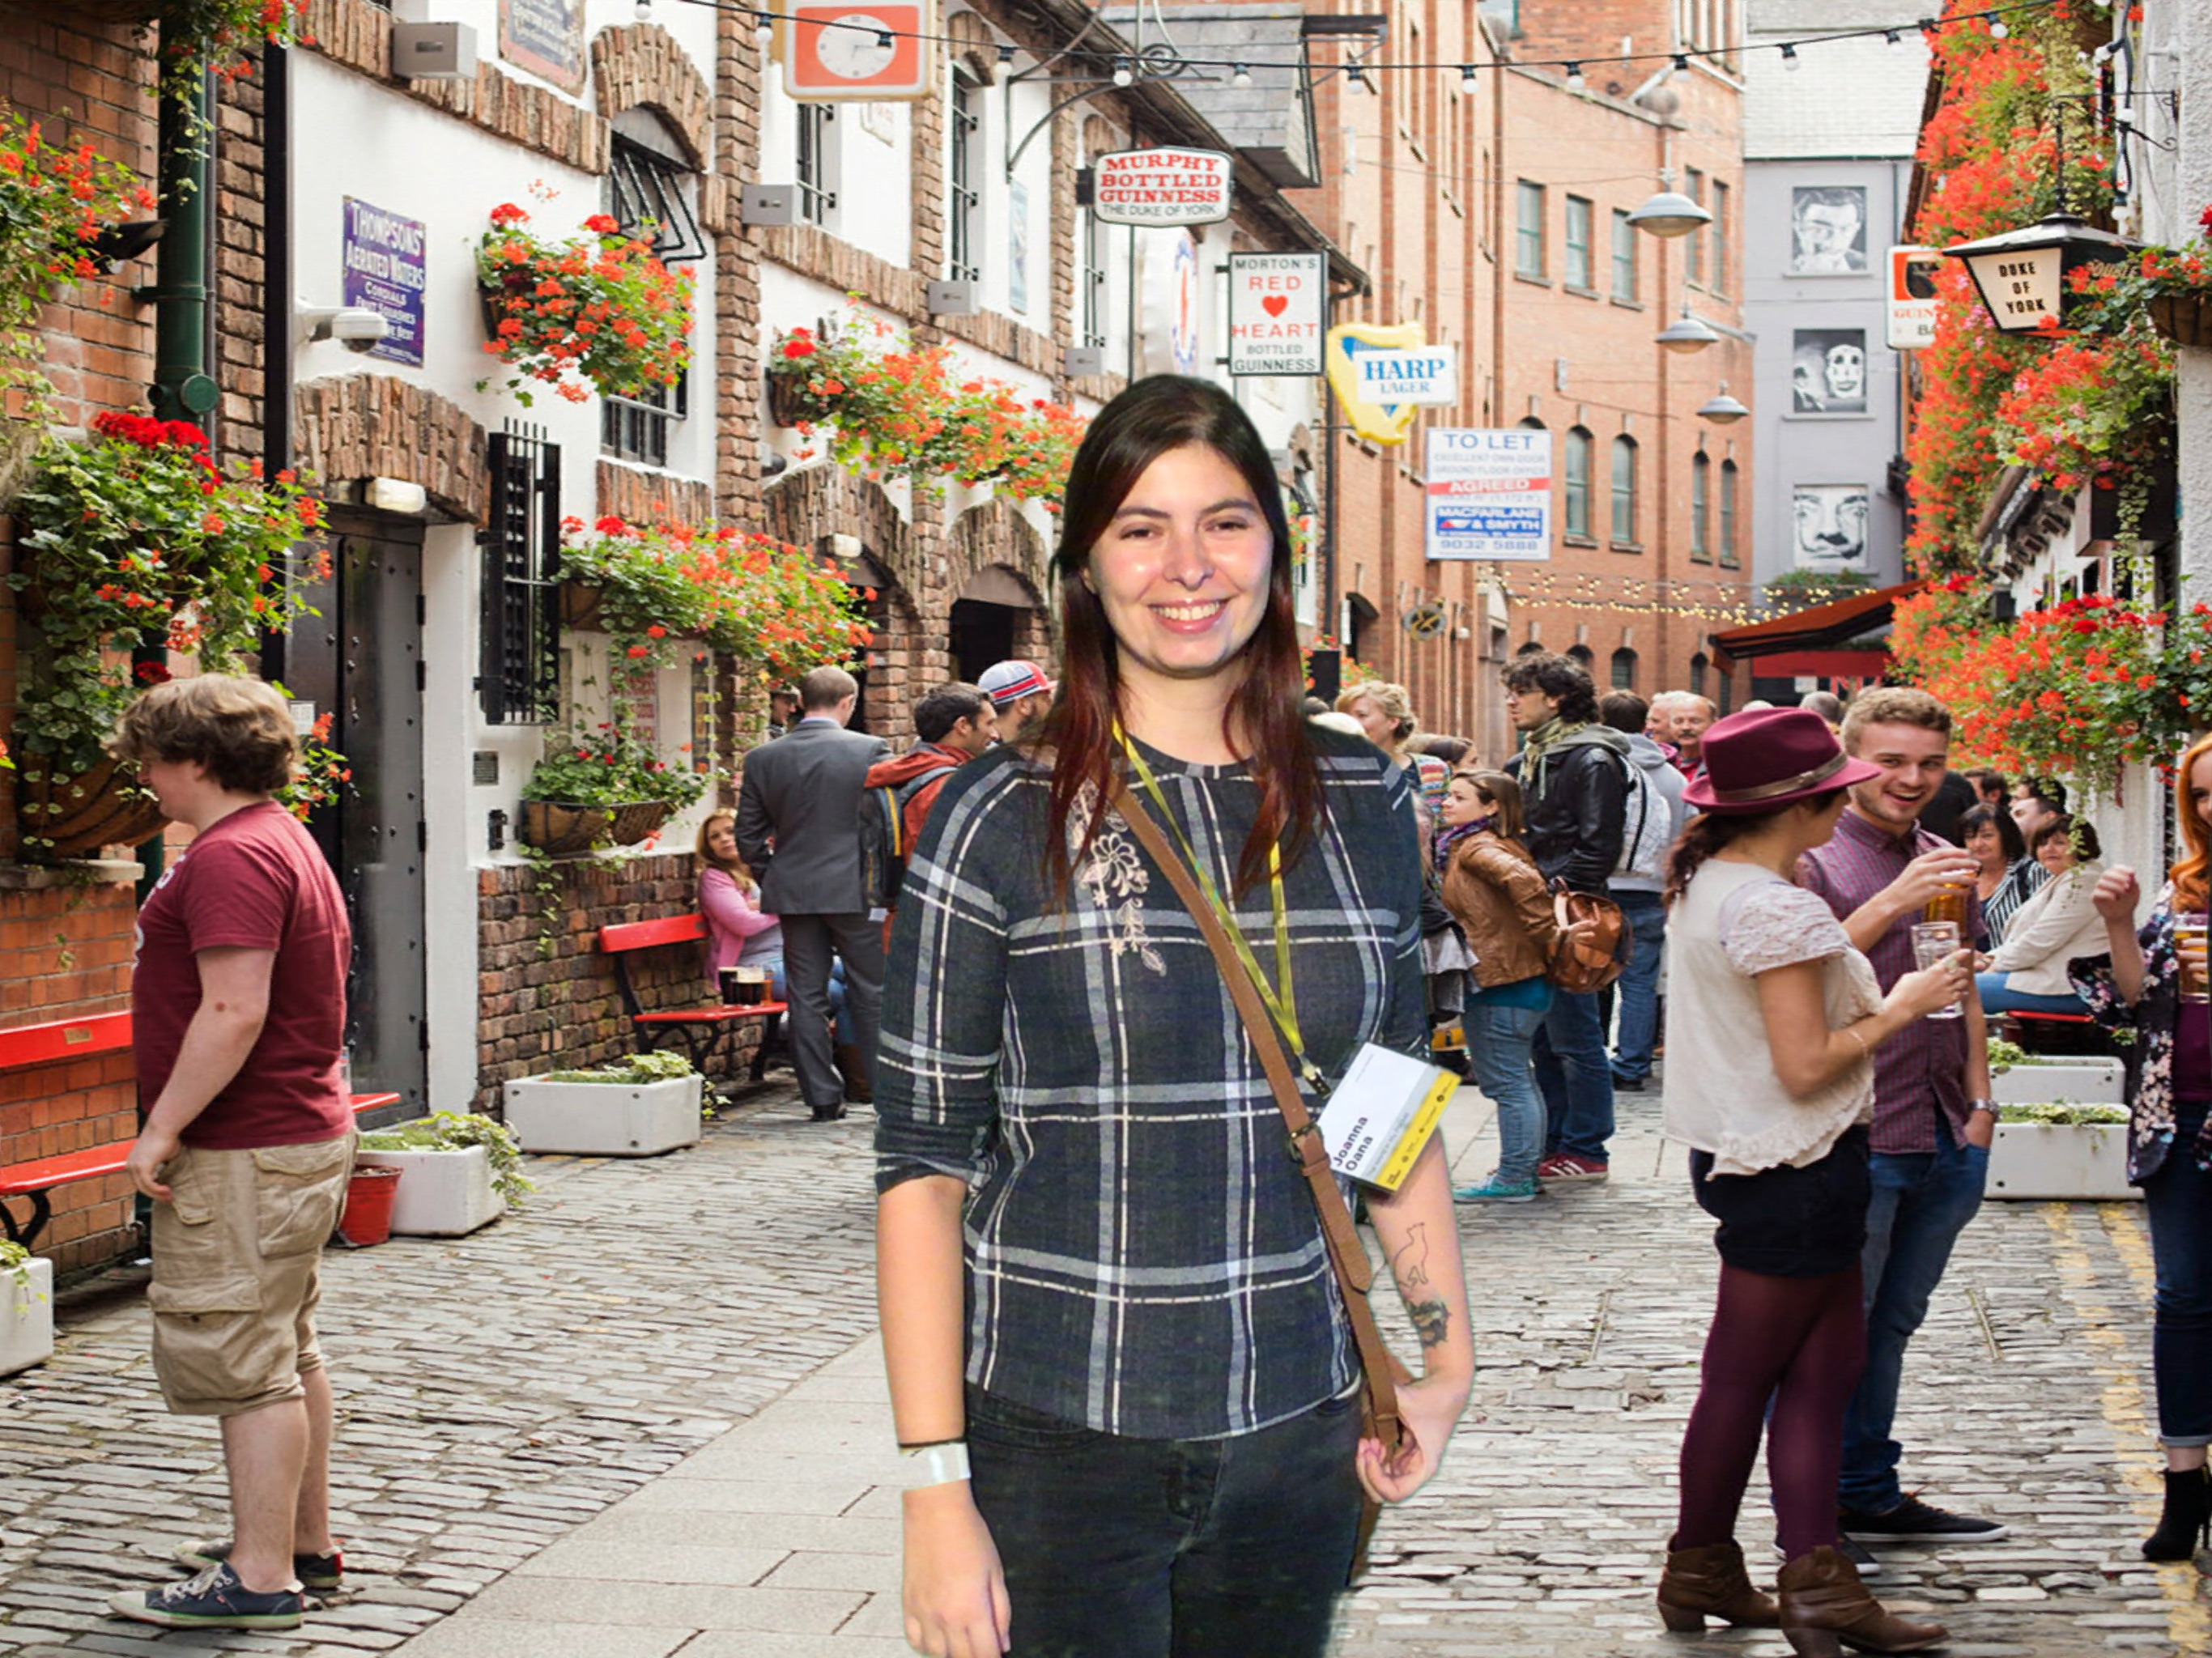 Virtual reality, a photo taken on a green screen with a background of a busy street in Belfast